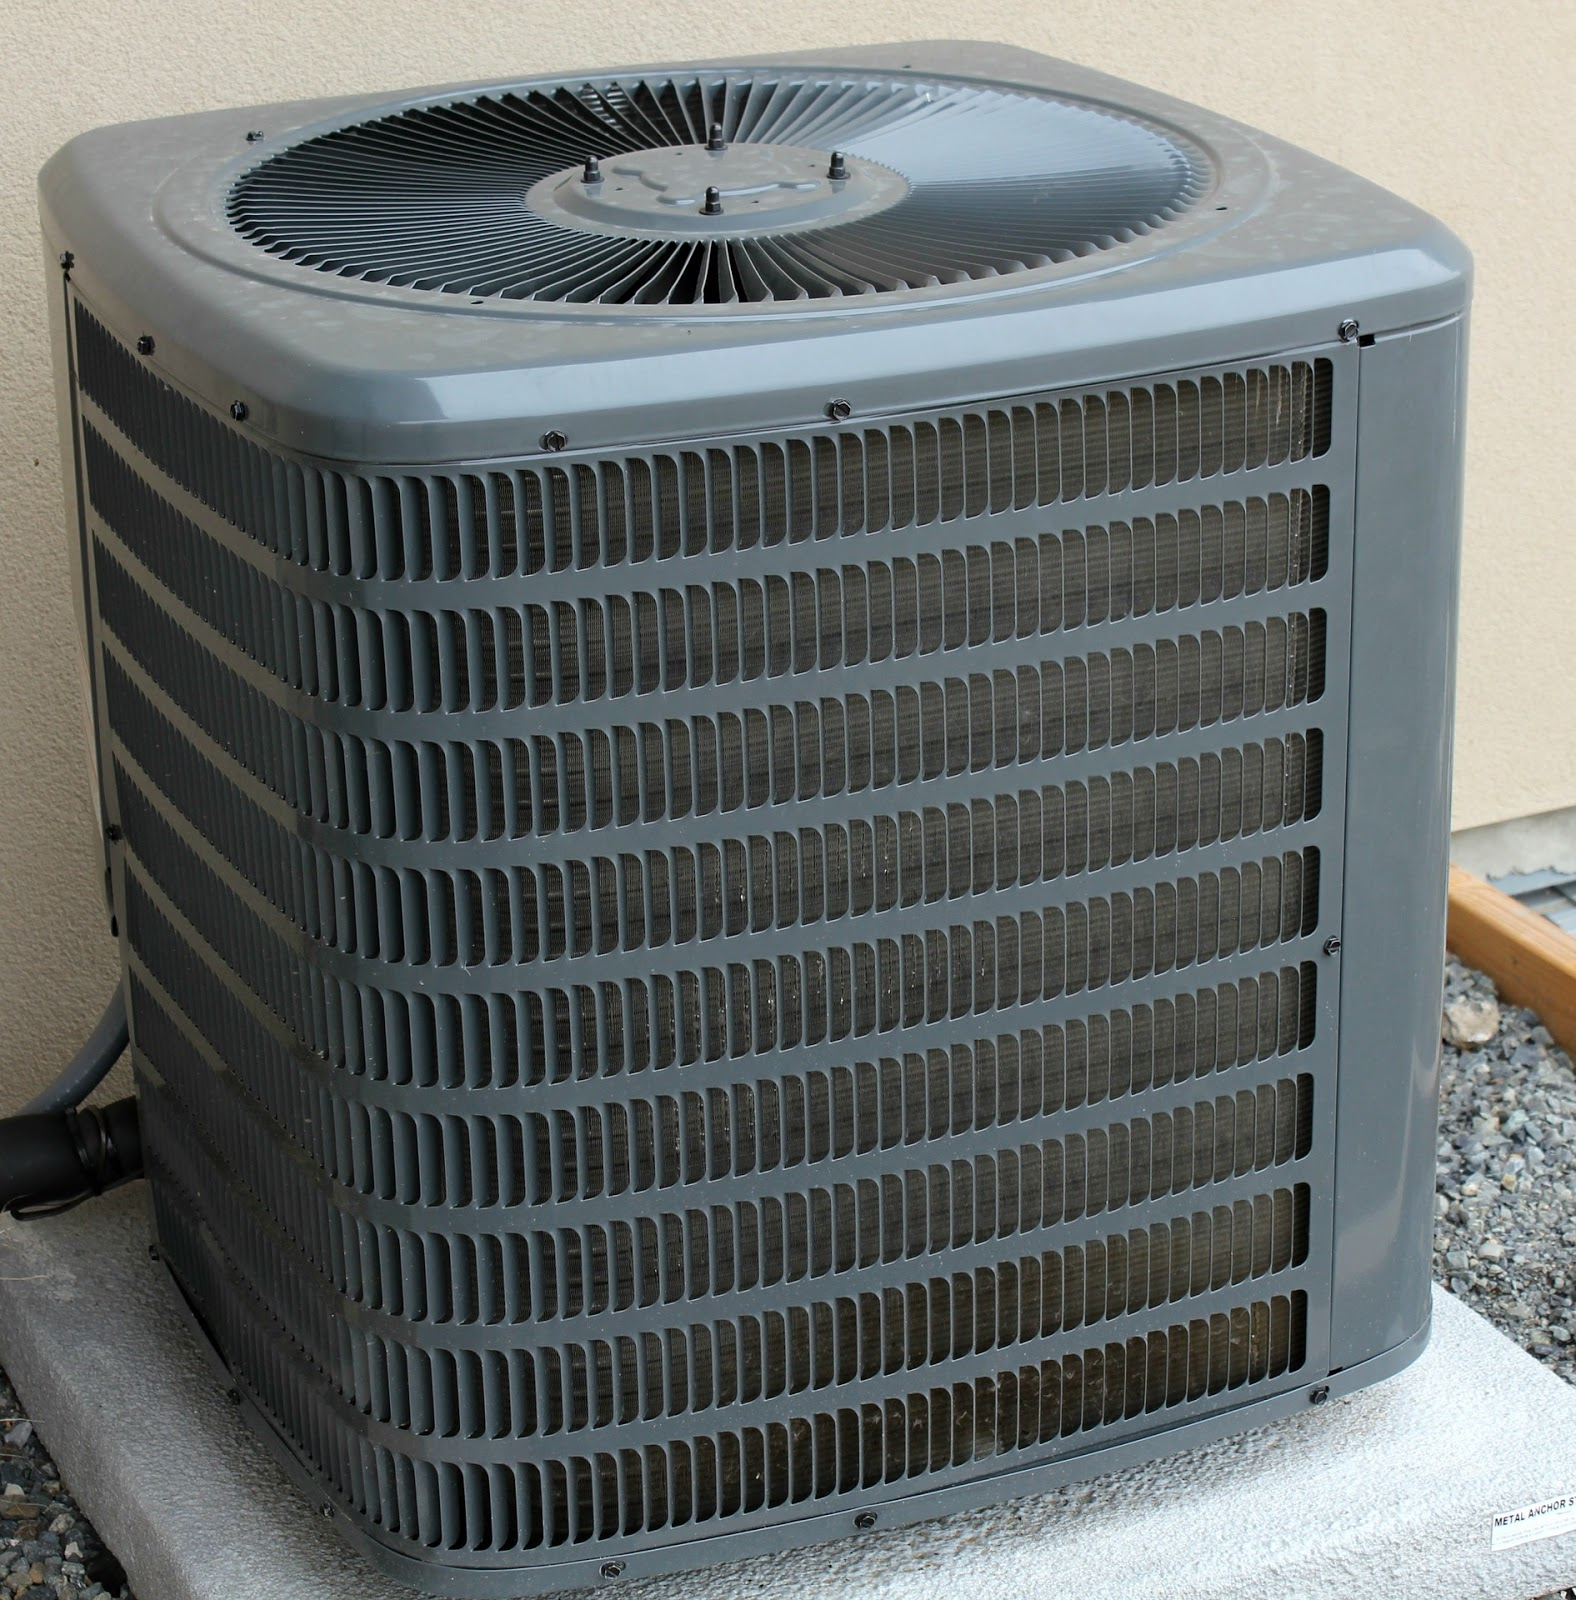 High Utility Bills? Here's Why Your HVAC System May Be the Reason